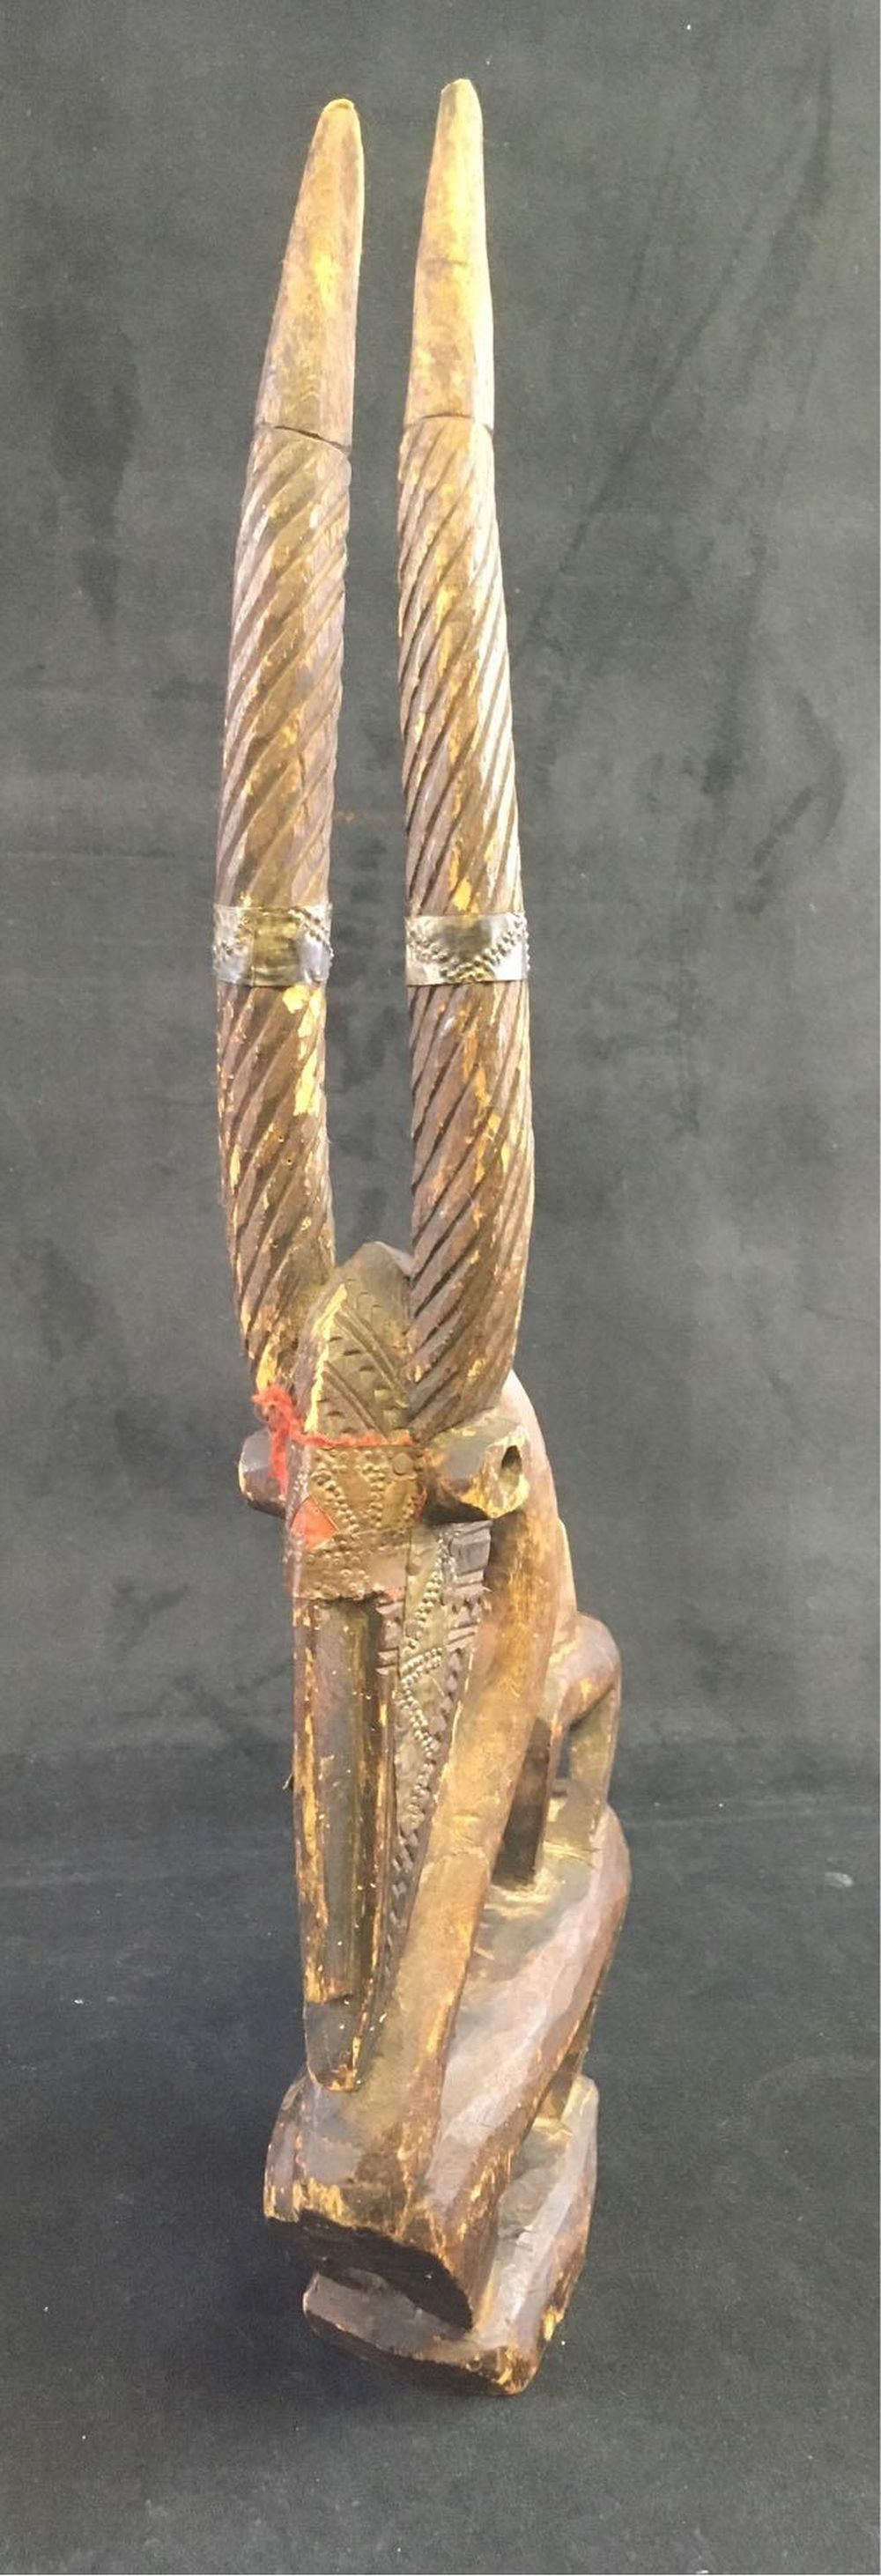 Lot 892: Antique African Culture Chi Wawa Mask Effigy Carving Mali